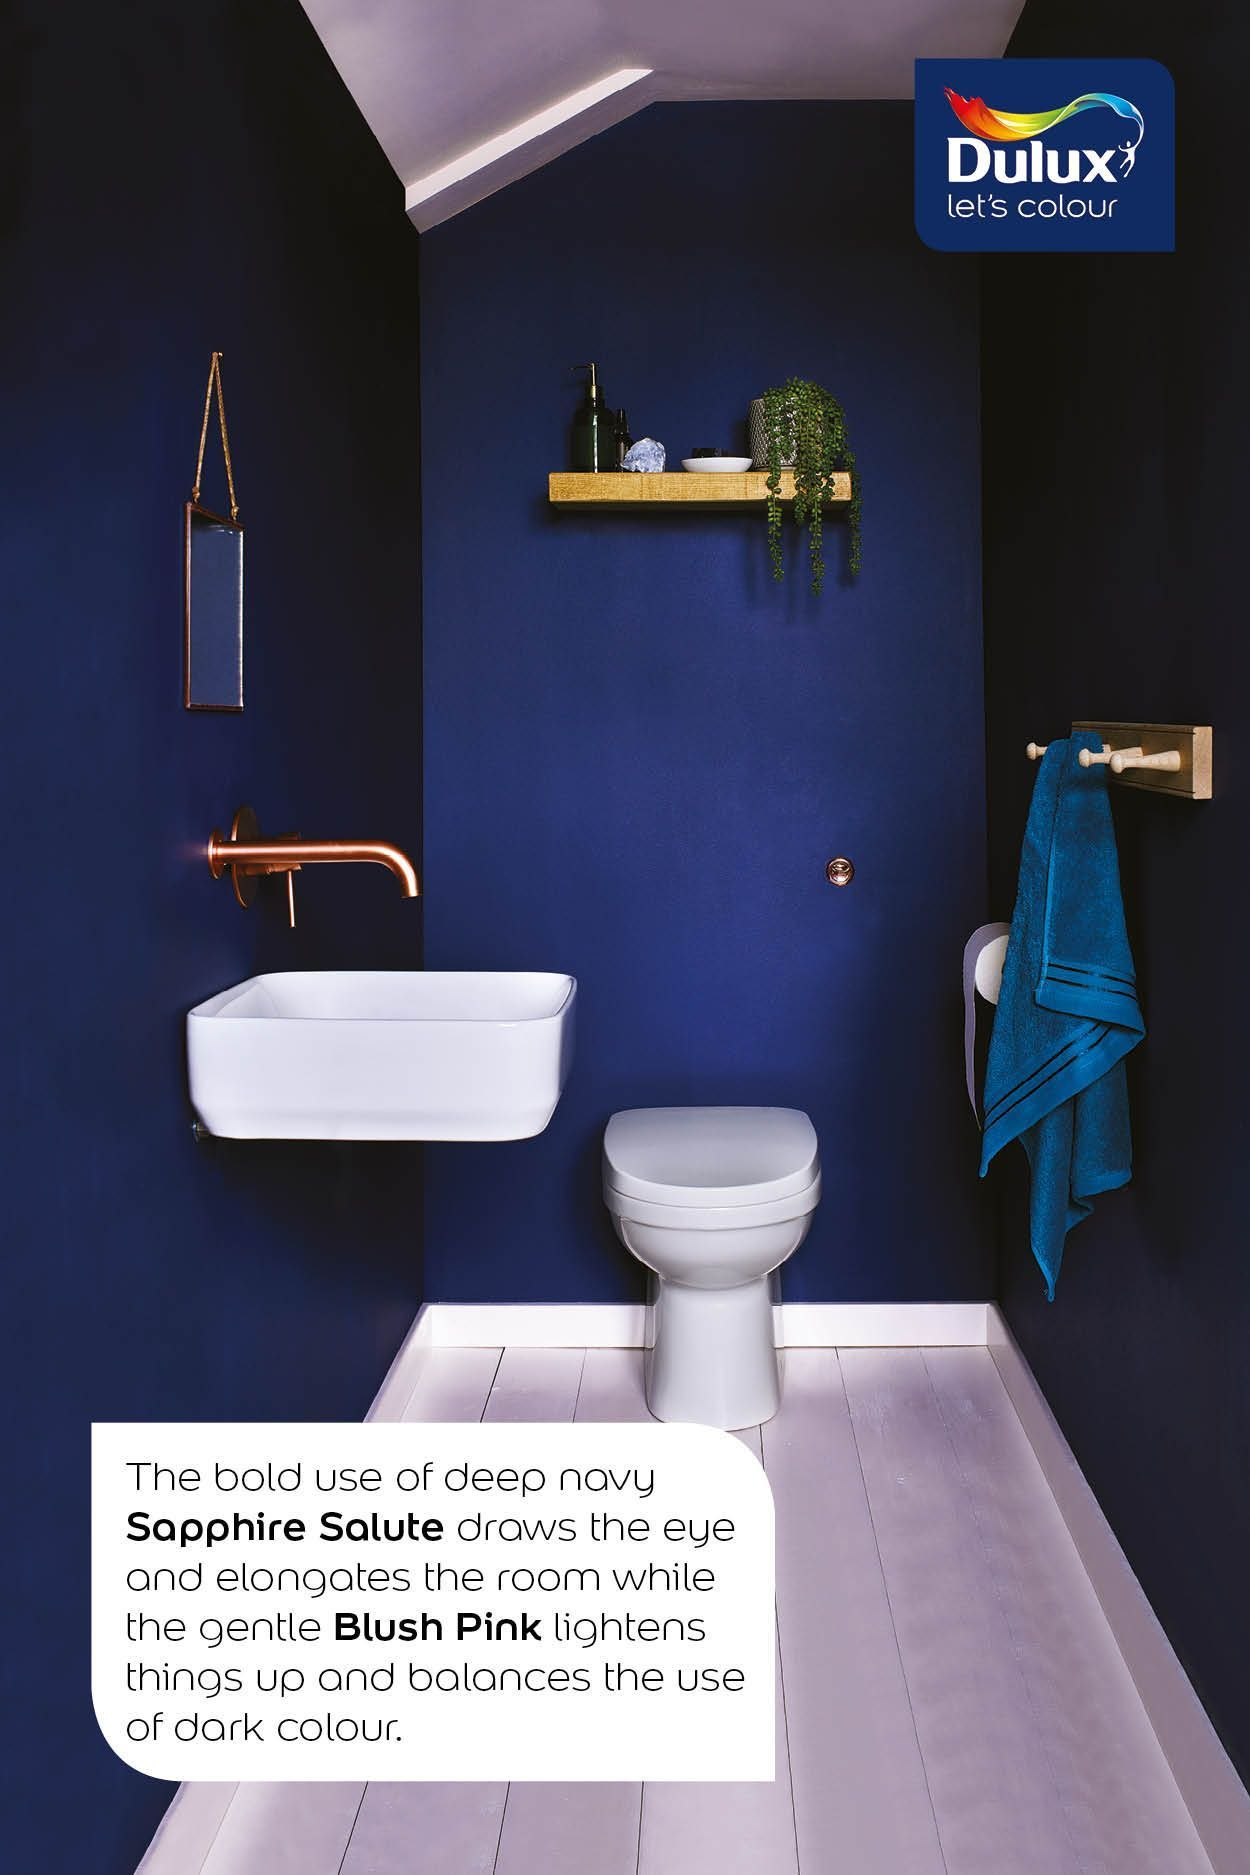 Dark Blue Bathroom Idea Downstairsloo Use A Navy Blue Like Dulux Sapphire Salute To Add Wow Factor To Your Dark Blue Bathrooms Blue Bathroom Small Toilet Room